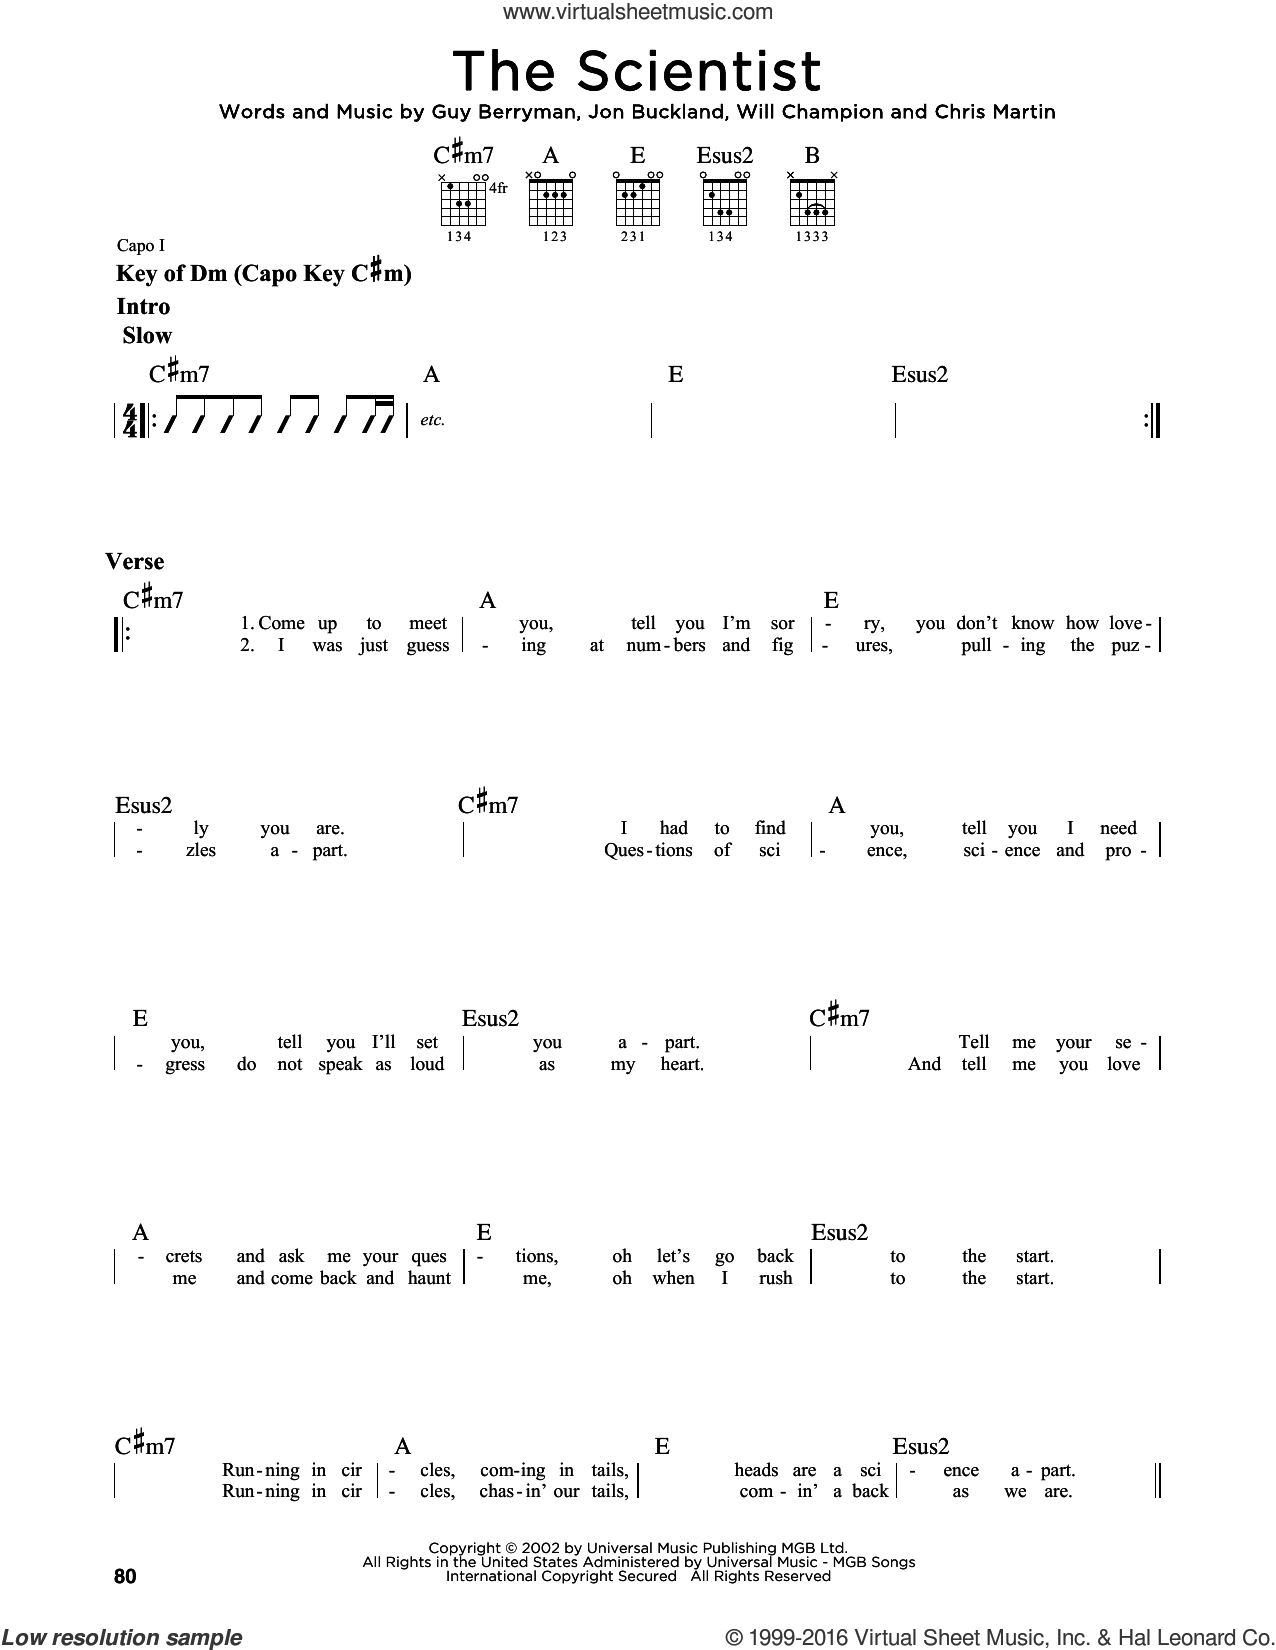 The Scientist sheet music for guitar solo (lead sheet) by Guy Berryman, Coldplay, Glee, Miscellaneous, Chris Martin, Jon Buckland and Will Champion, intermediate guitar (lead sheet)